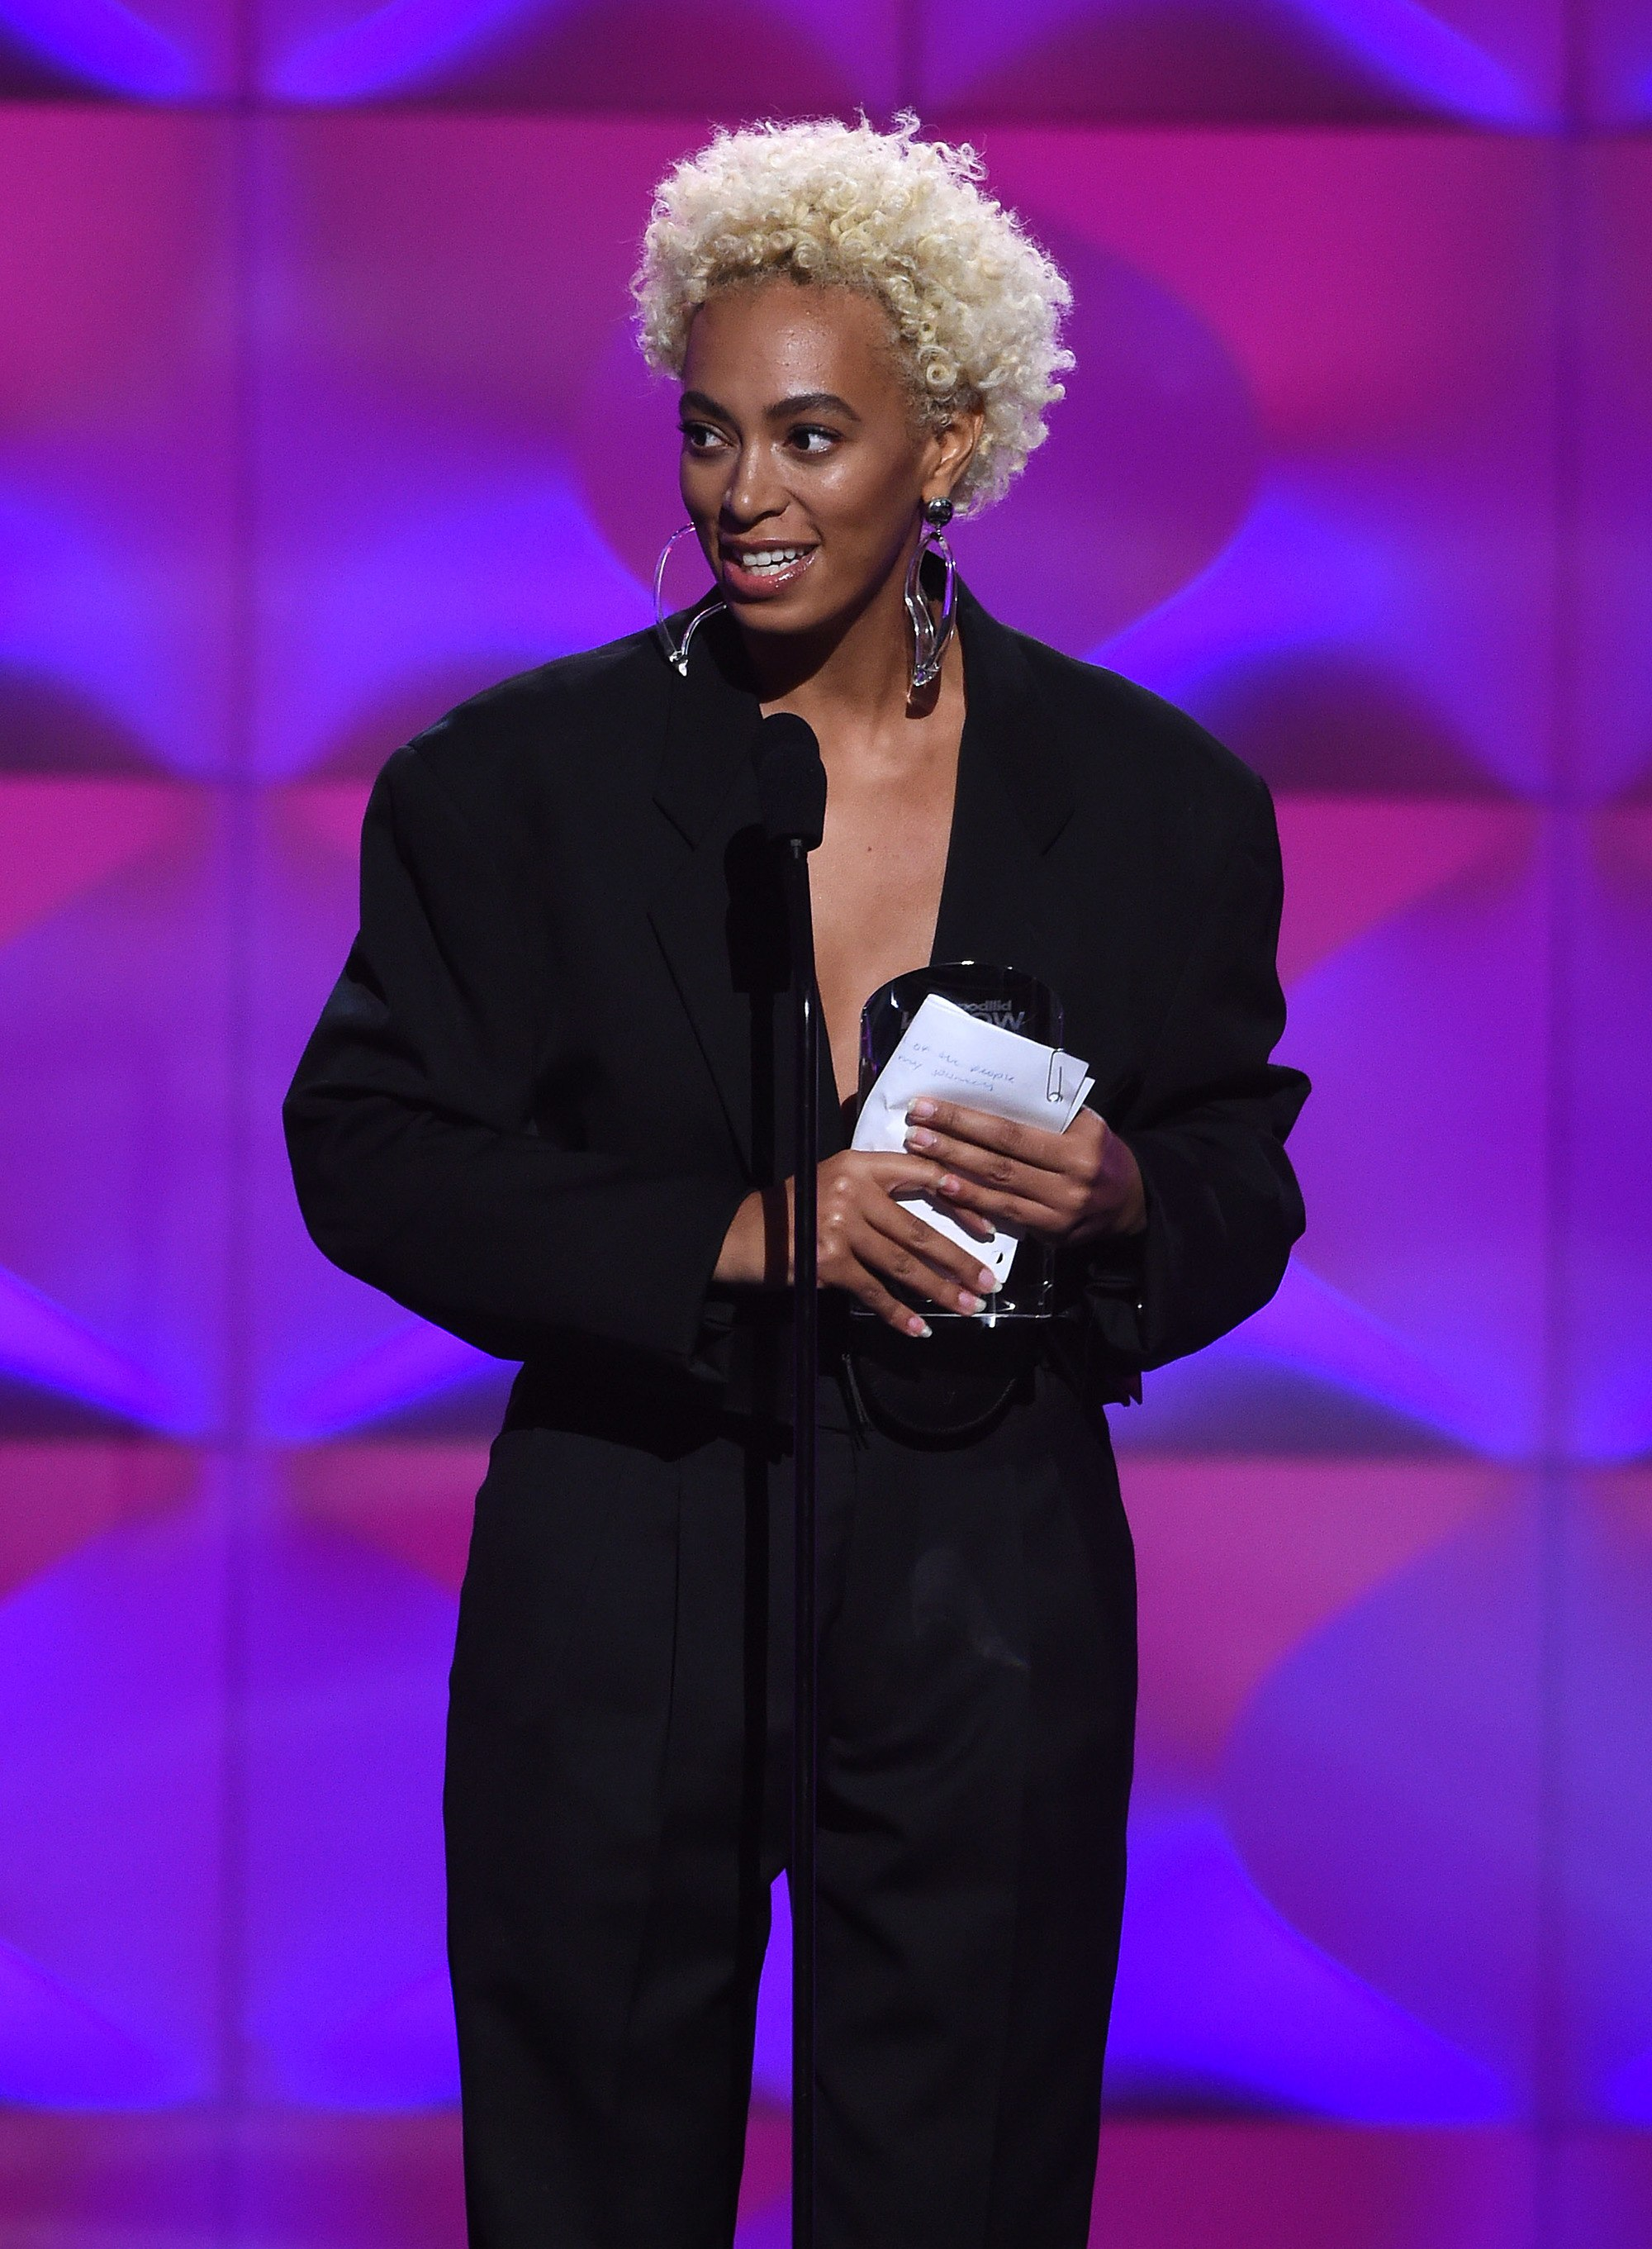 close up shot of solange knowles with blonde afro hairstyle, wearing black jumpsuit and accepting award at the billboard women in music awards